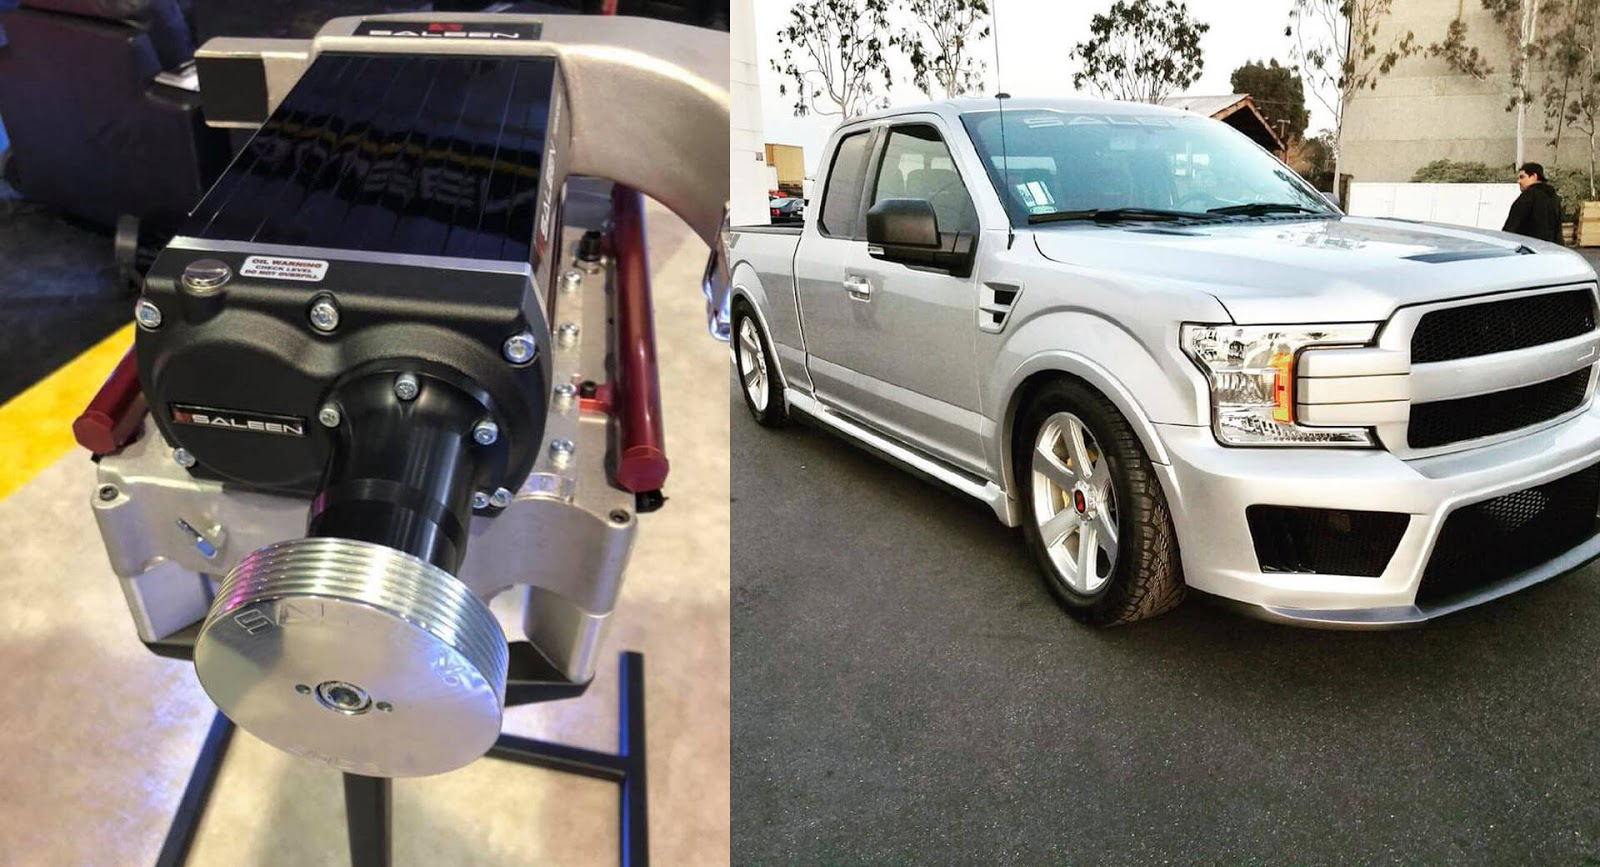 supercharged saleen sport truck introduced with 700 hp car news. Black Bedroom Furniture Sets. Home Design Ideas